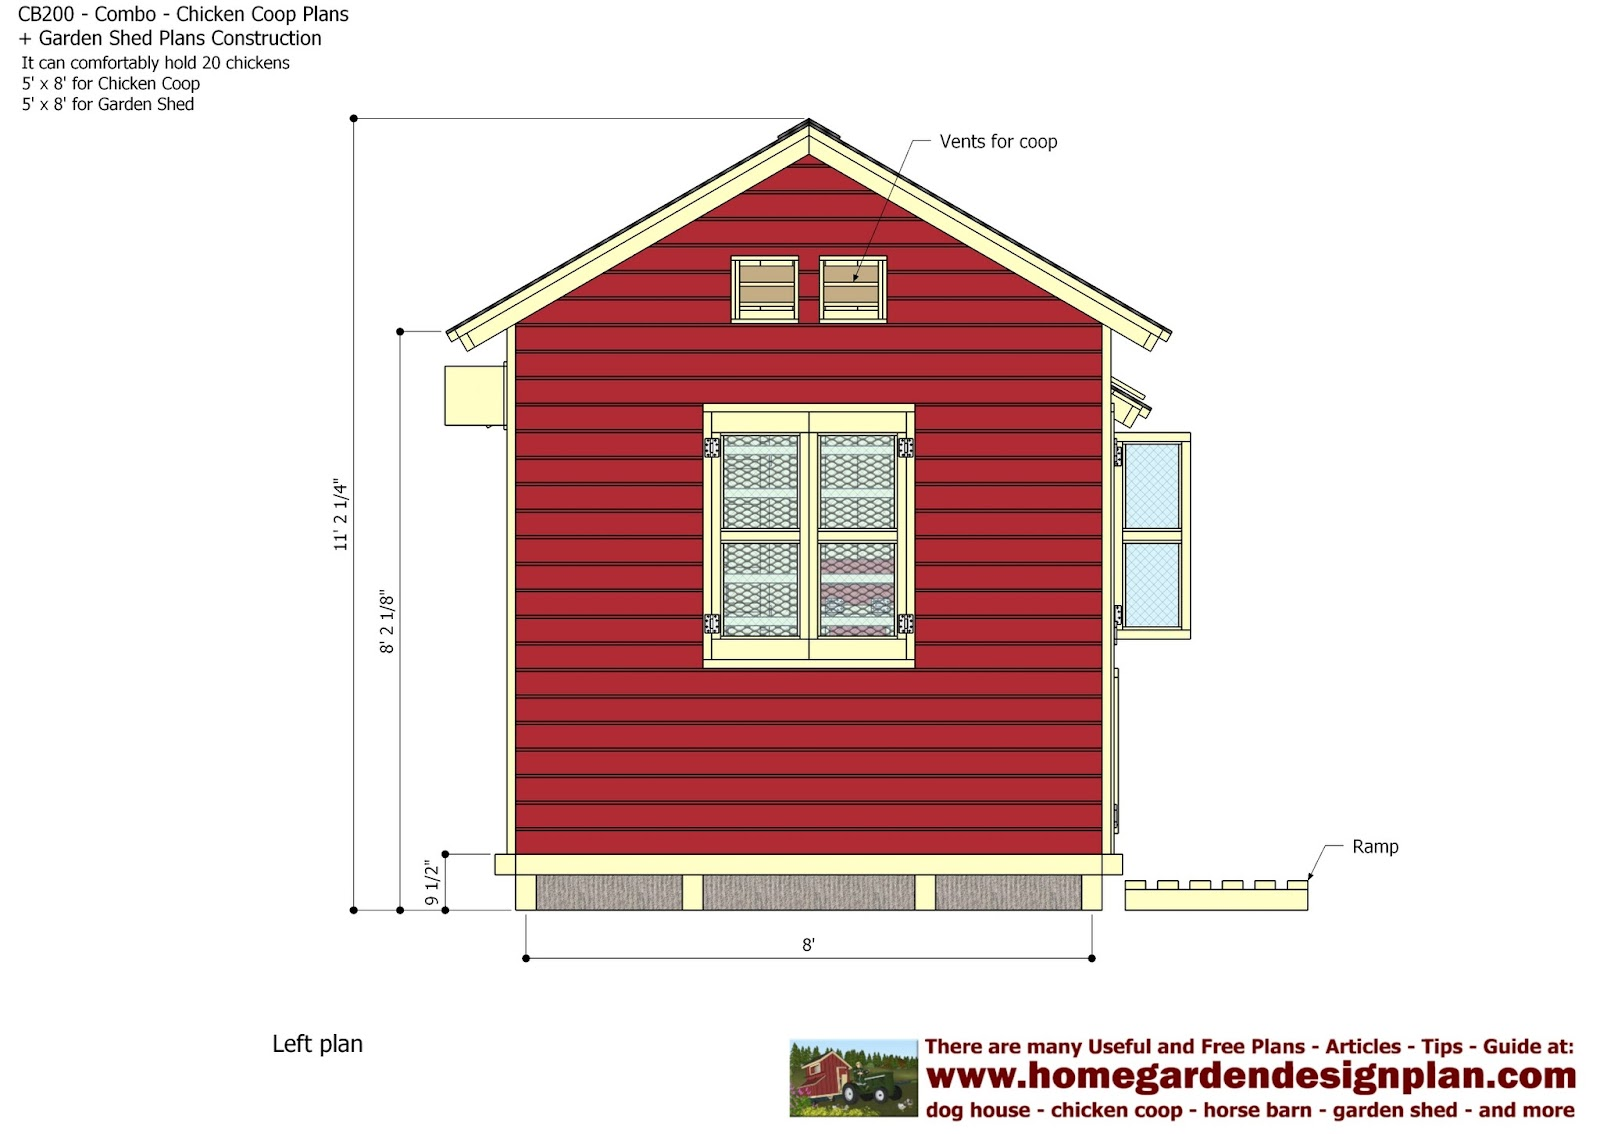 Garden Sheds 5m X 3m home garden plans: cb200 - combo plans - chicken coop plans